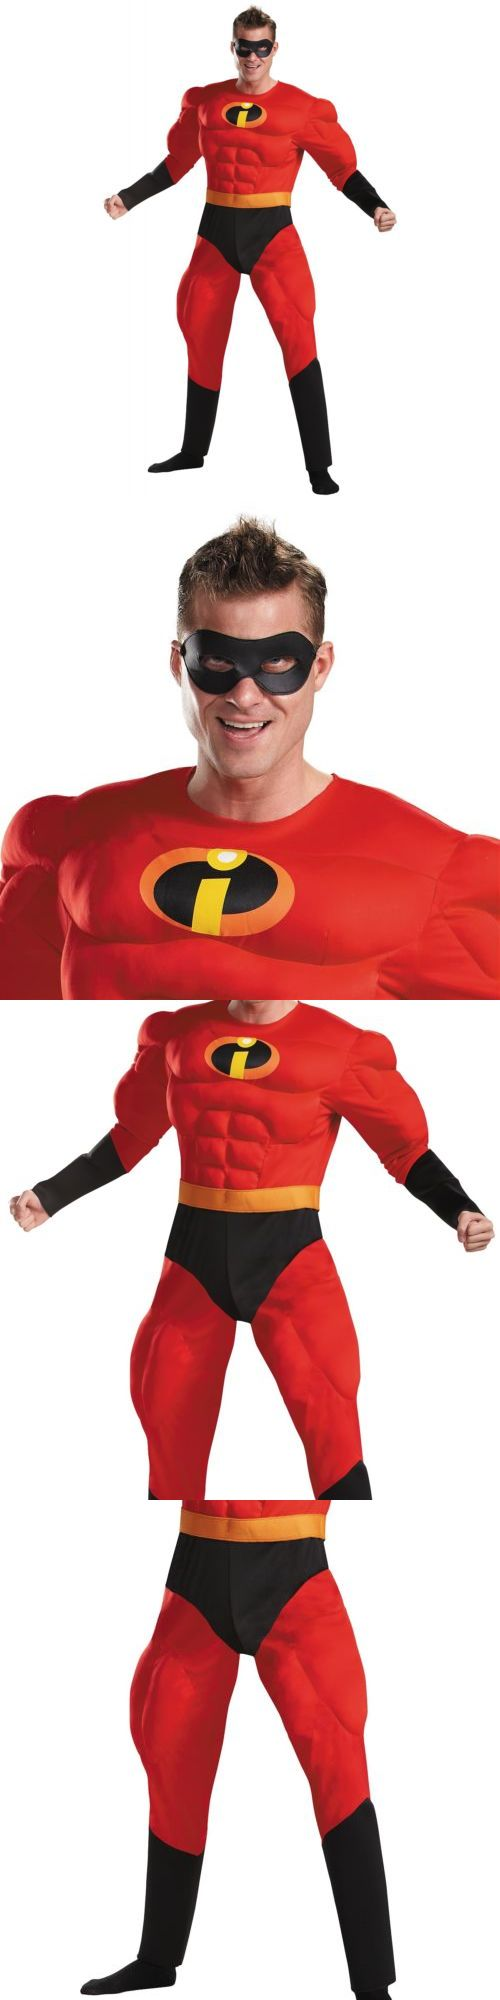 Best 25+ Incredibles costume ideas on Pinterest | The incredibles ...